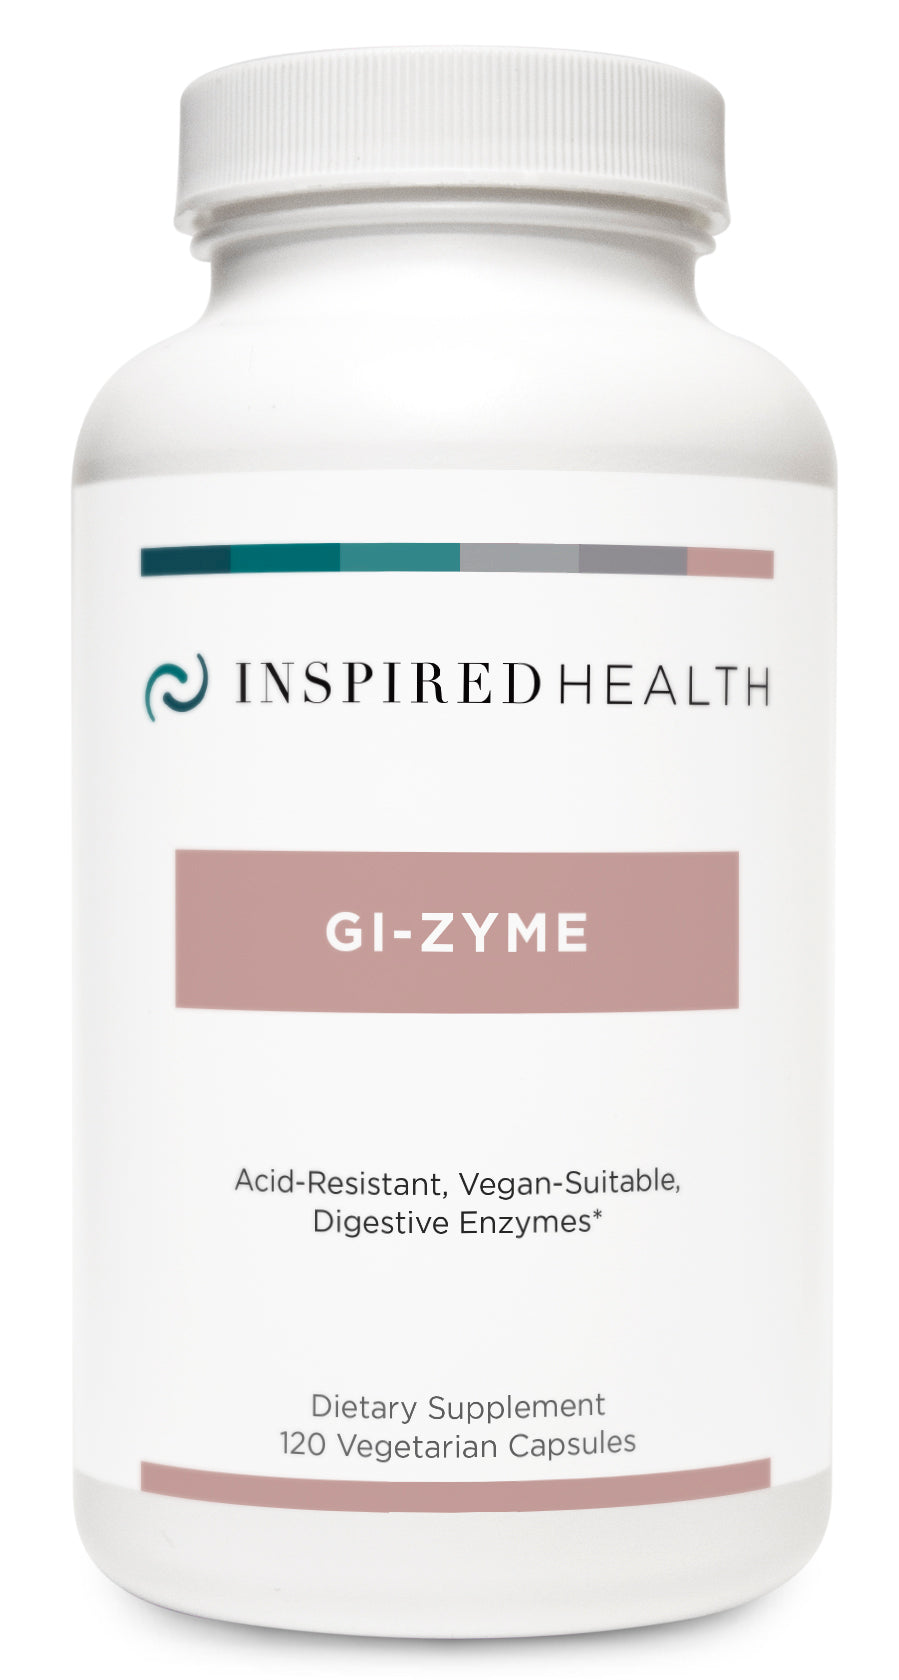 GI-Zyme - Inspired Health Apothecary - Digestive Enzyme, Gas, Bloating